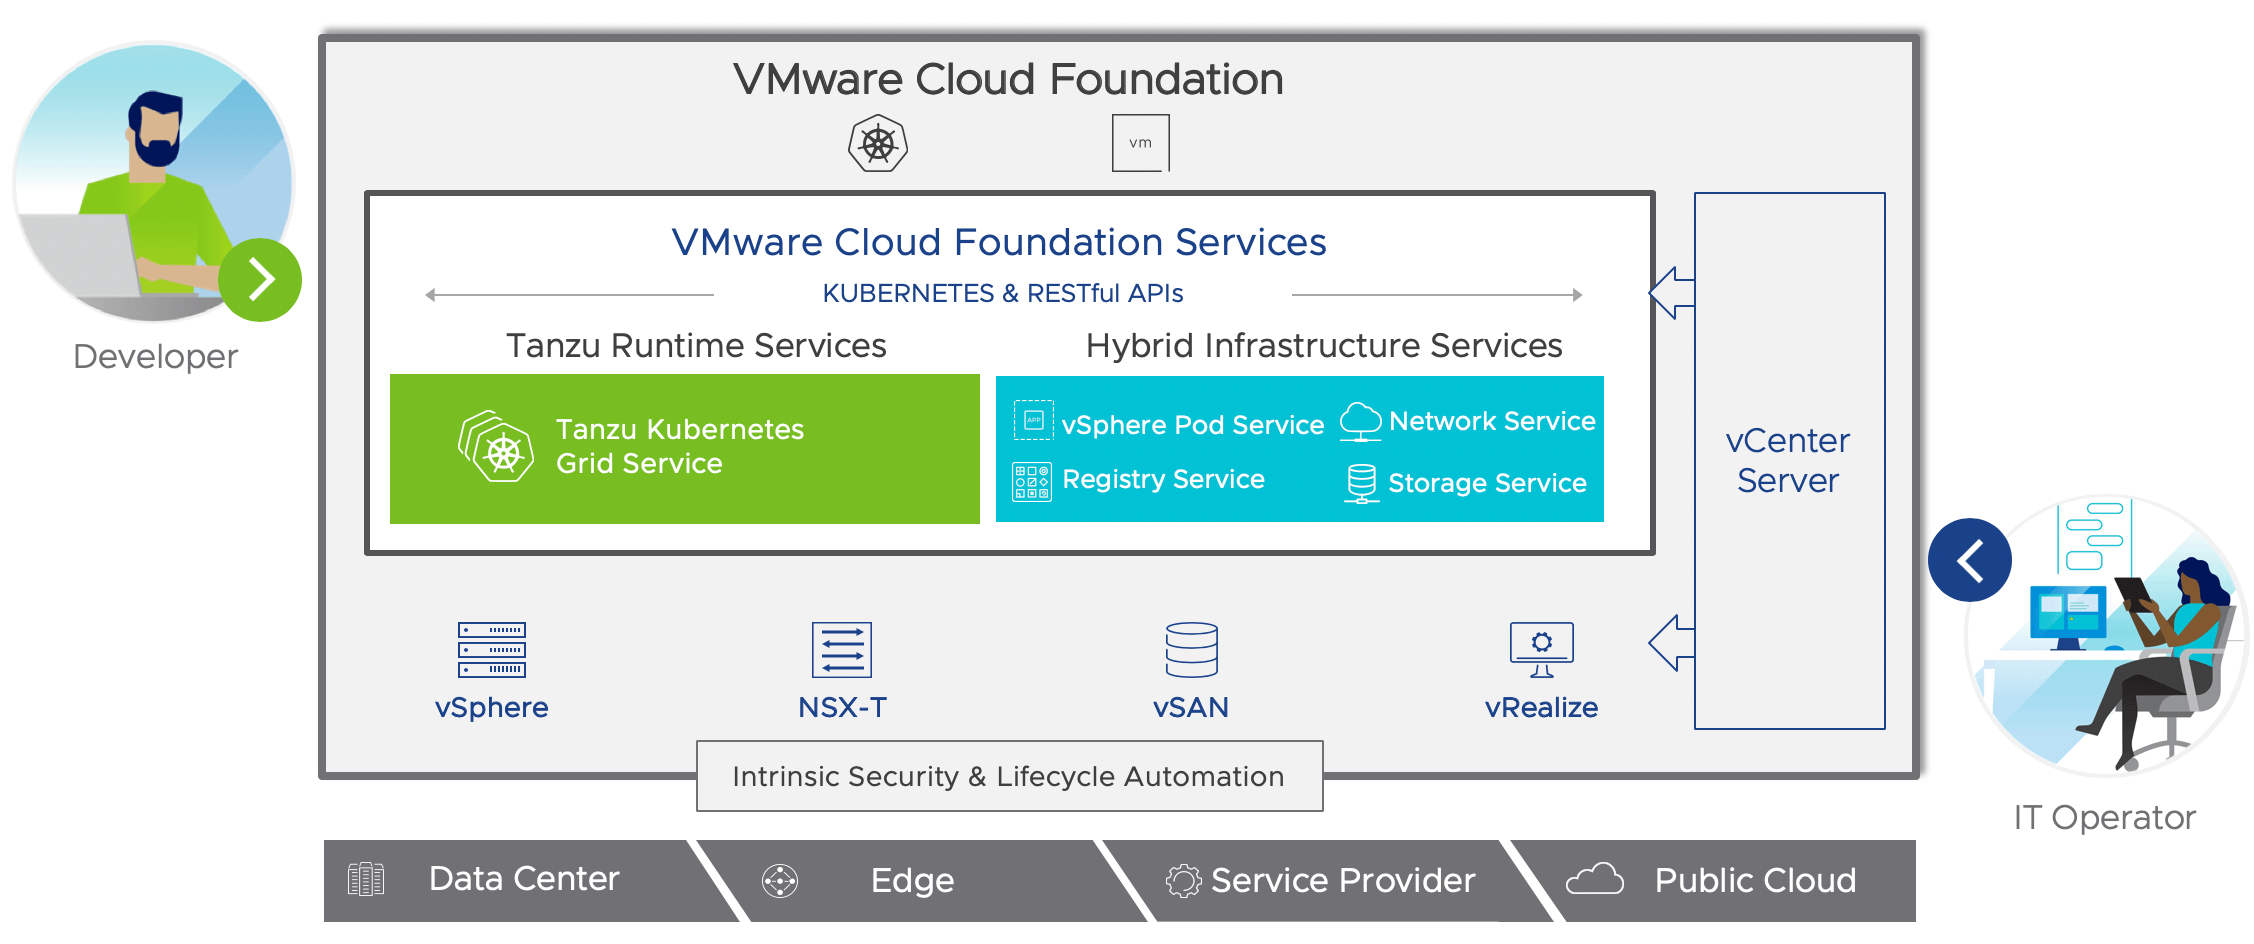 VMware Cloud Foundation 4.0